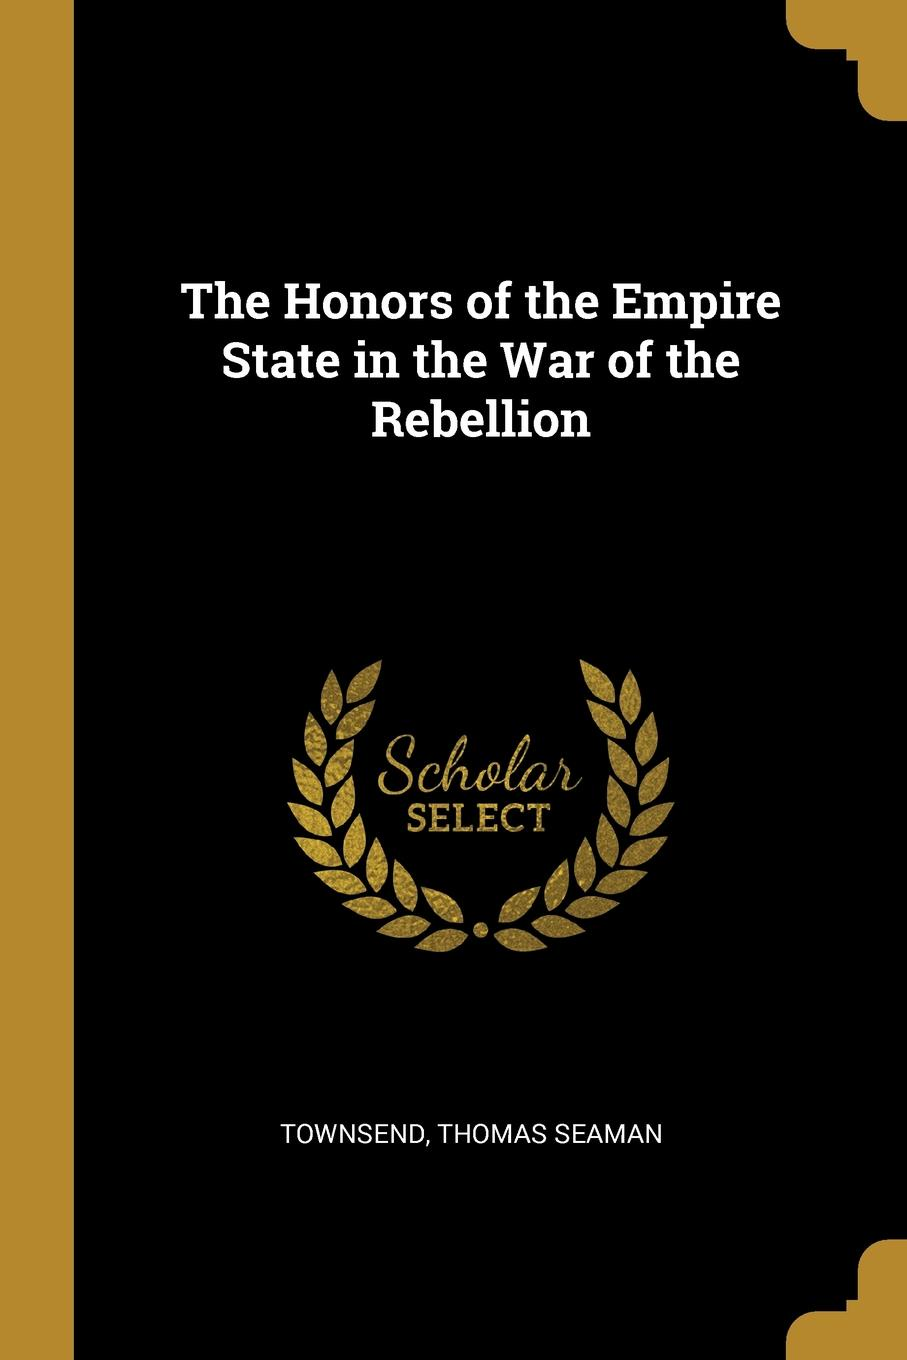 Townsend Thomas Seaman. The Honors of the Empire State in the War of the Rebellion